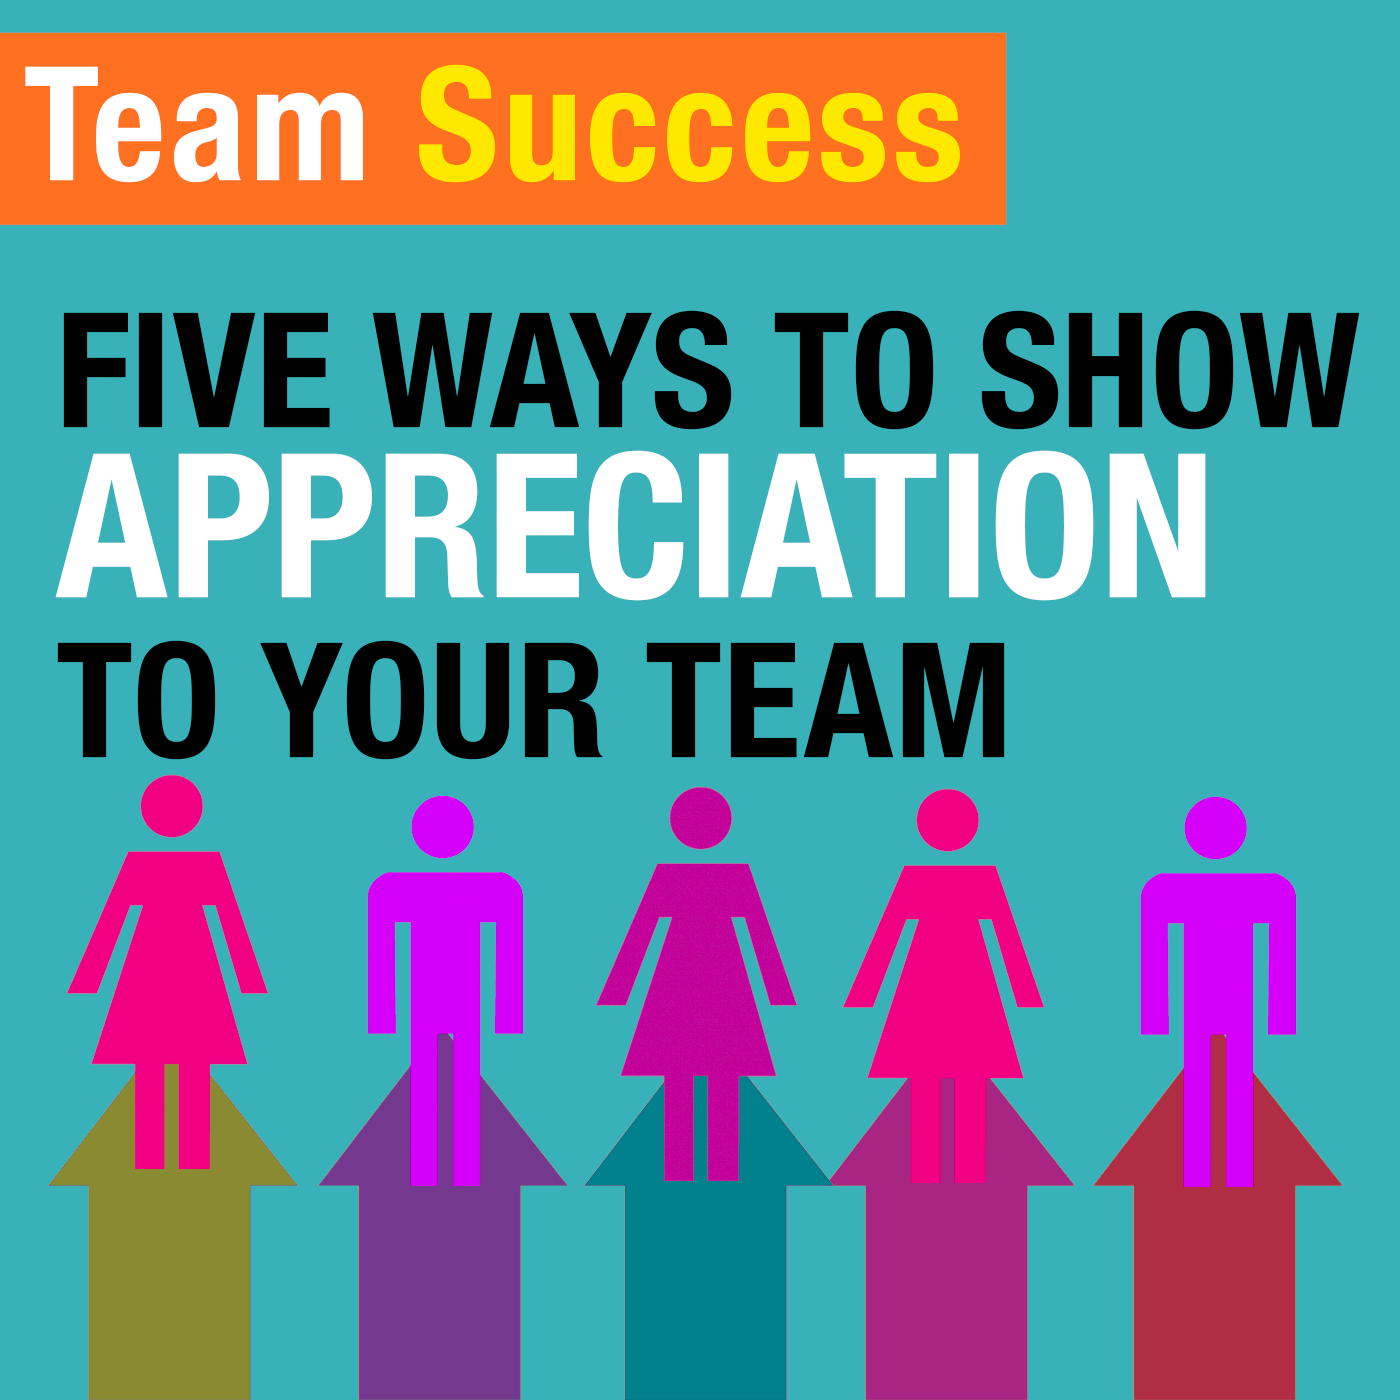 Five Ways To Show Appreciation To Your Team